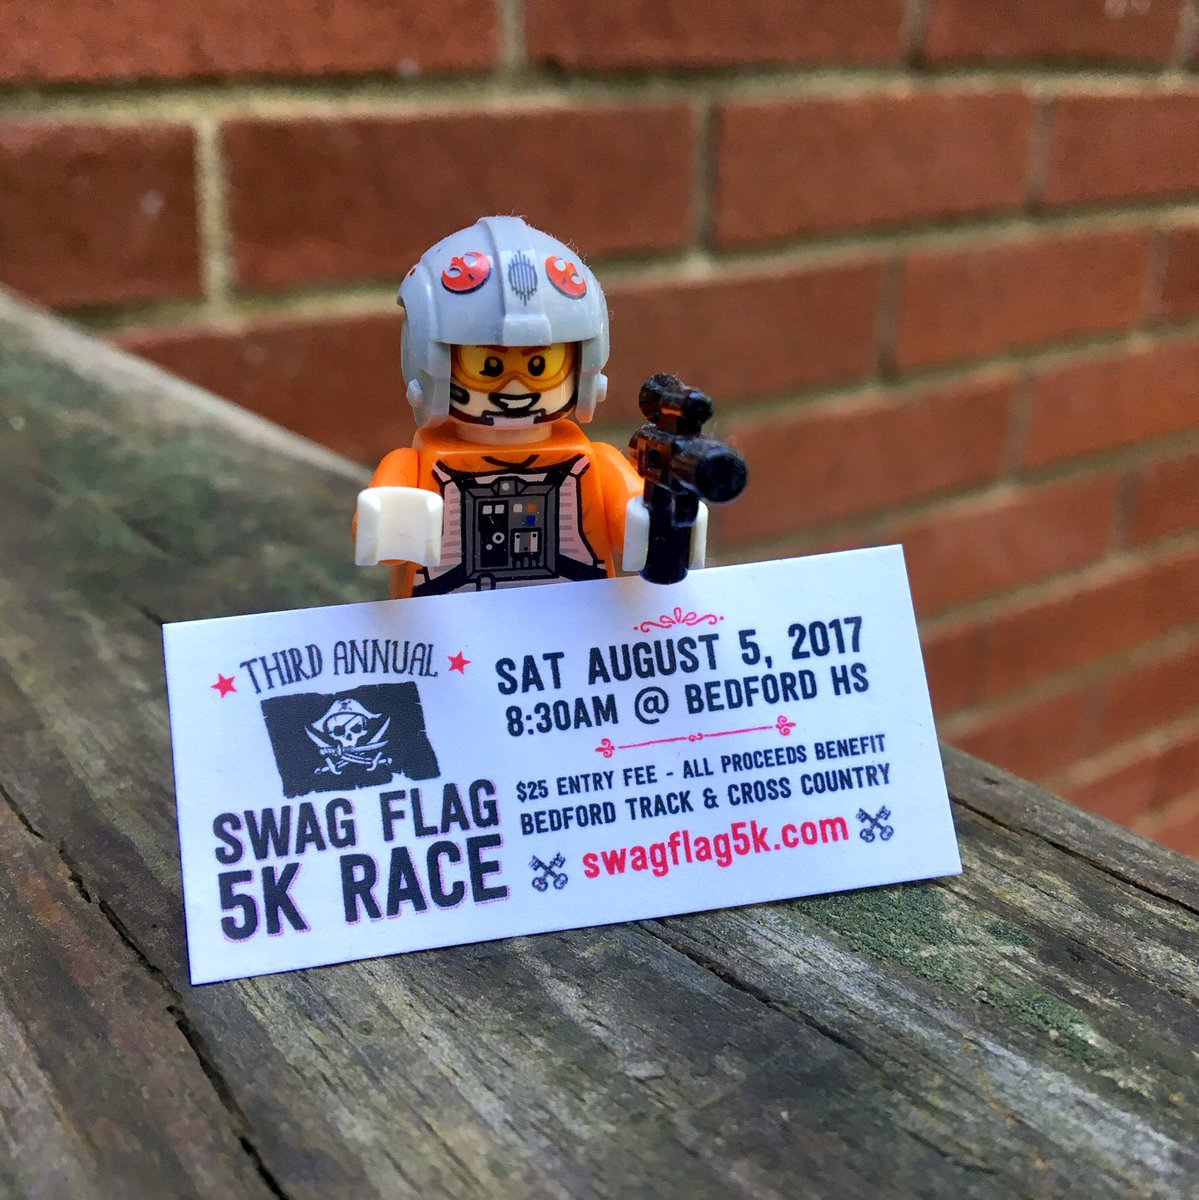 You&#39;ll have a blast at the #swagflag5k Aug 5th at Bedford HS @TheRealSwagFlag #5Km #roadrace<br>http://pic.twitter.com/DdEcP18VEJ